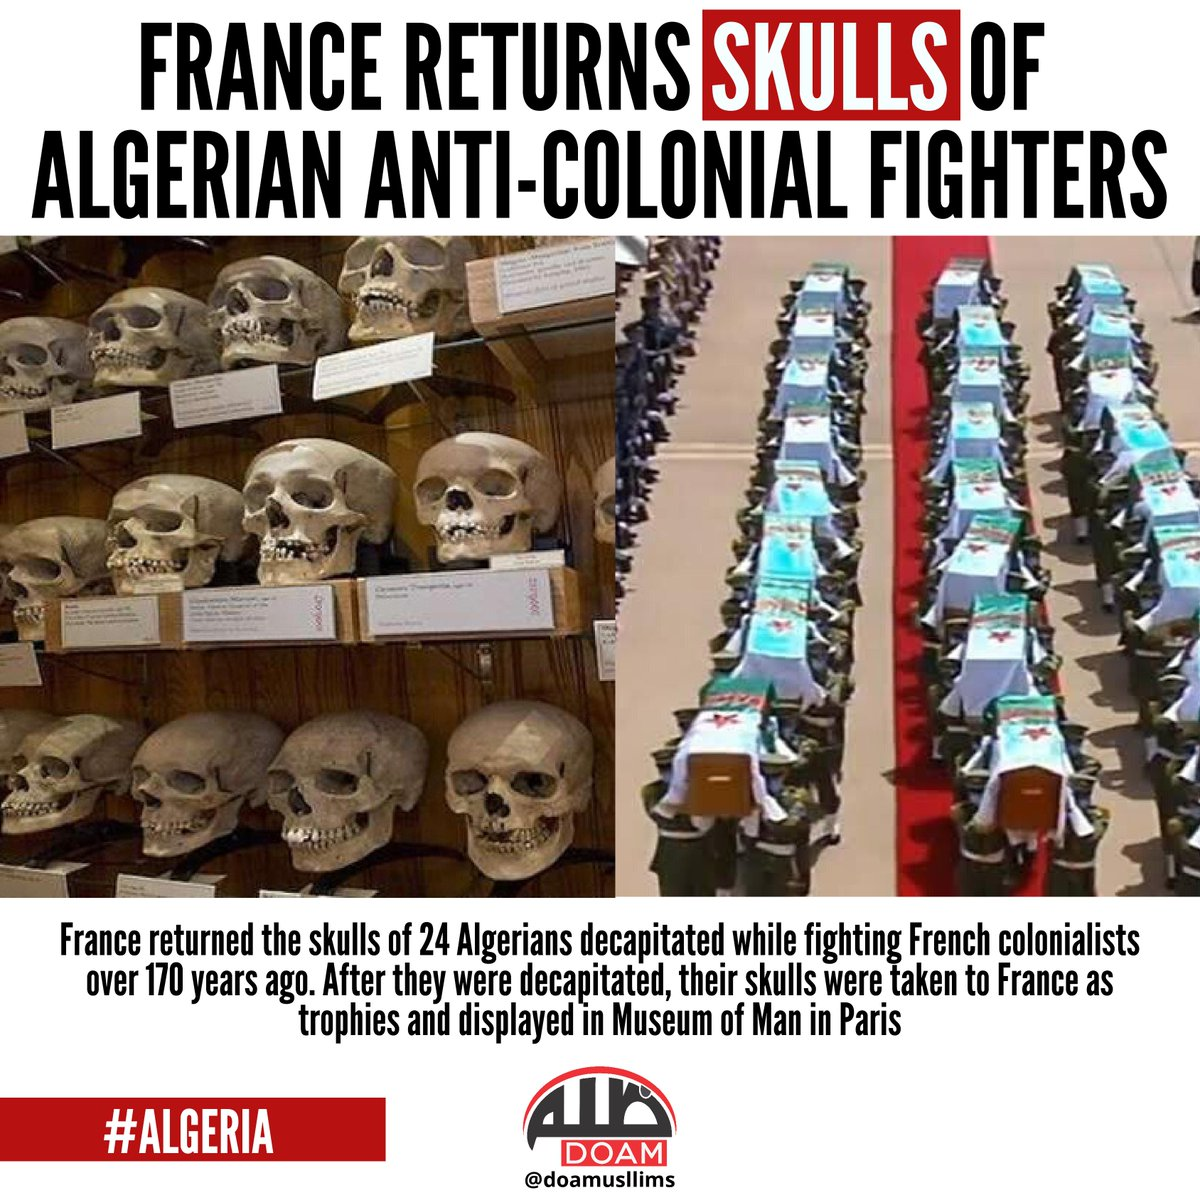 "DOAM on Twitter: ""#France Returns Skulls of #Algeria